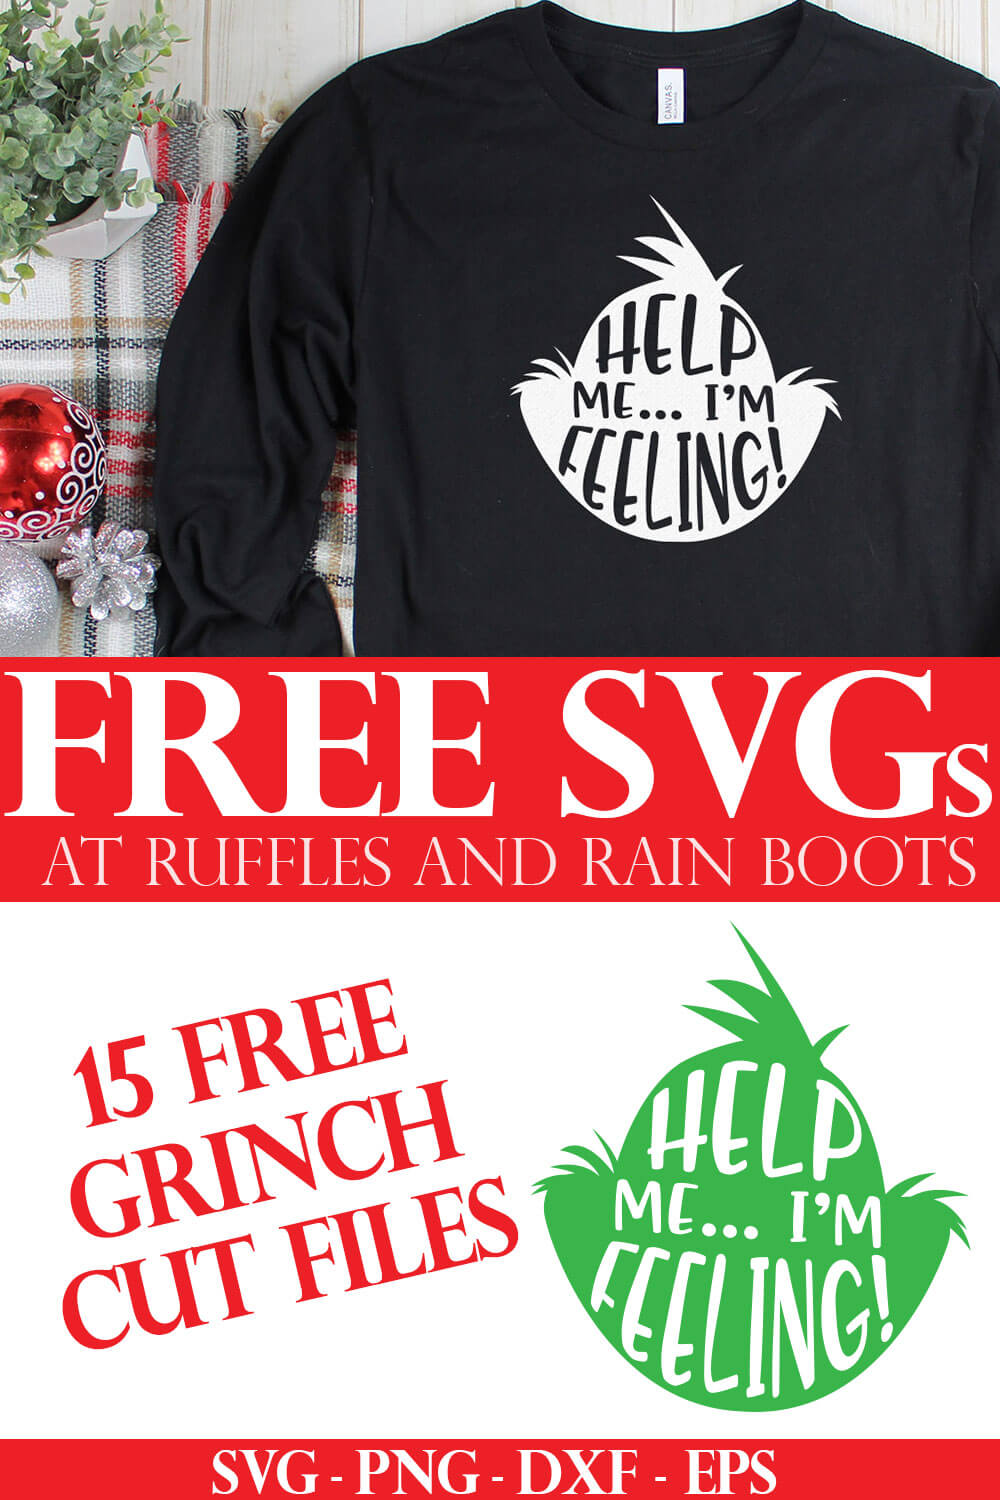 help me im feeling grinch face svg in white Cricut vinyl on black t shirt on holiday background with text which reads free grinch SVG from Ruffles and Rain Boots